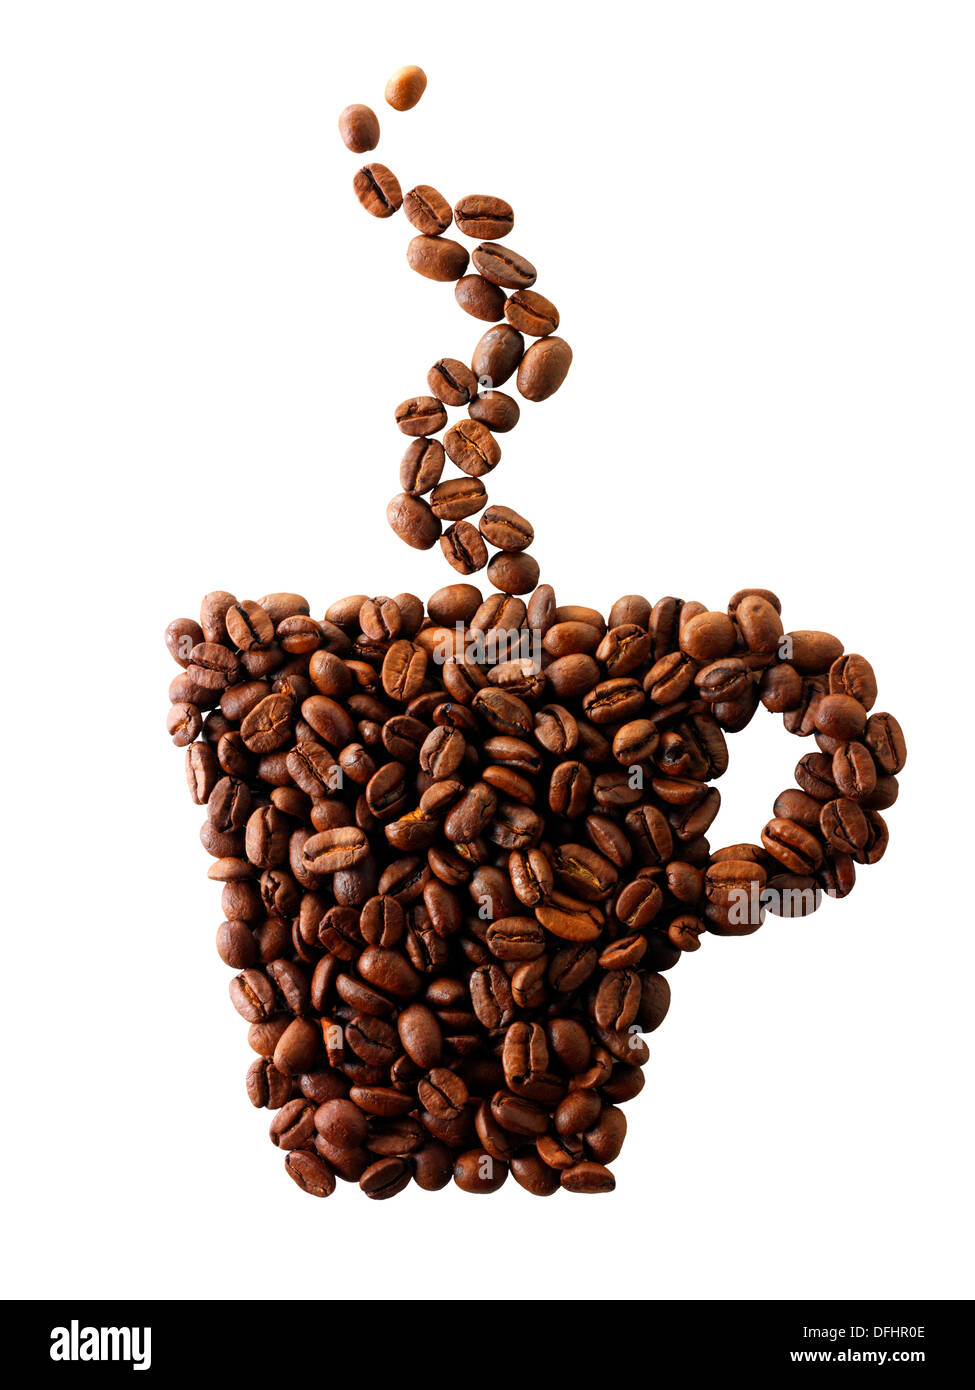 Coffee mug made out of coffee beans - Stock Image